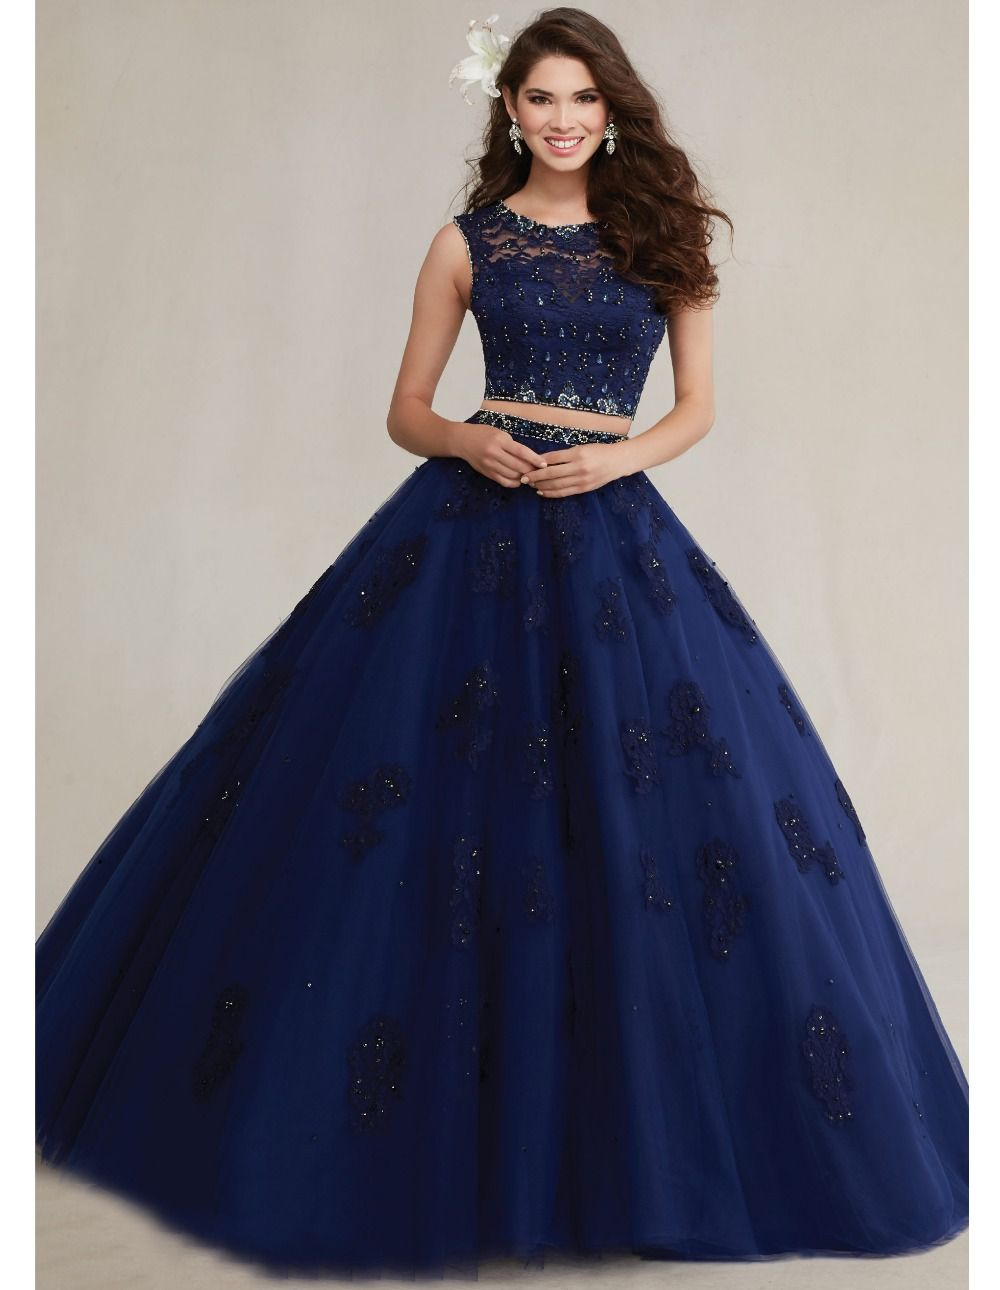 a848b6abac4 Newest crystal lace royal blue sweet 16 dresses two pieces quinceanera  dresses blue masquerade party debut ball gowns YK 061